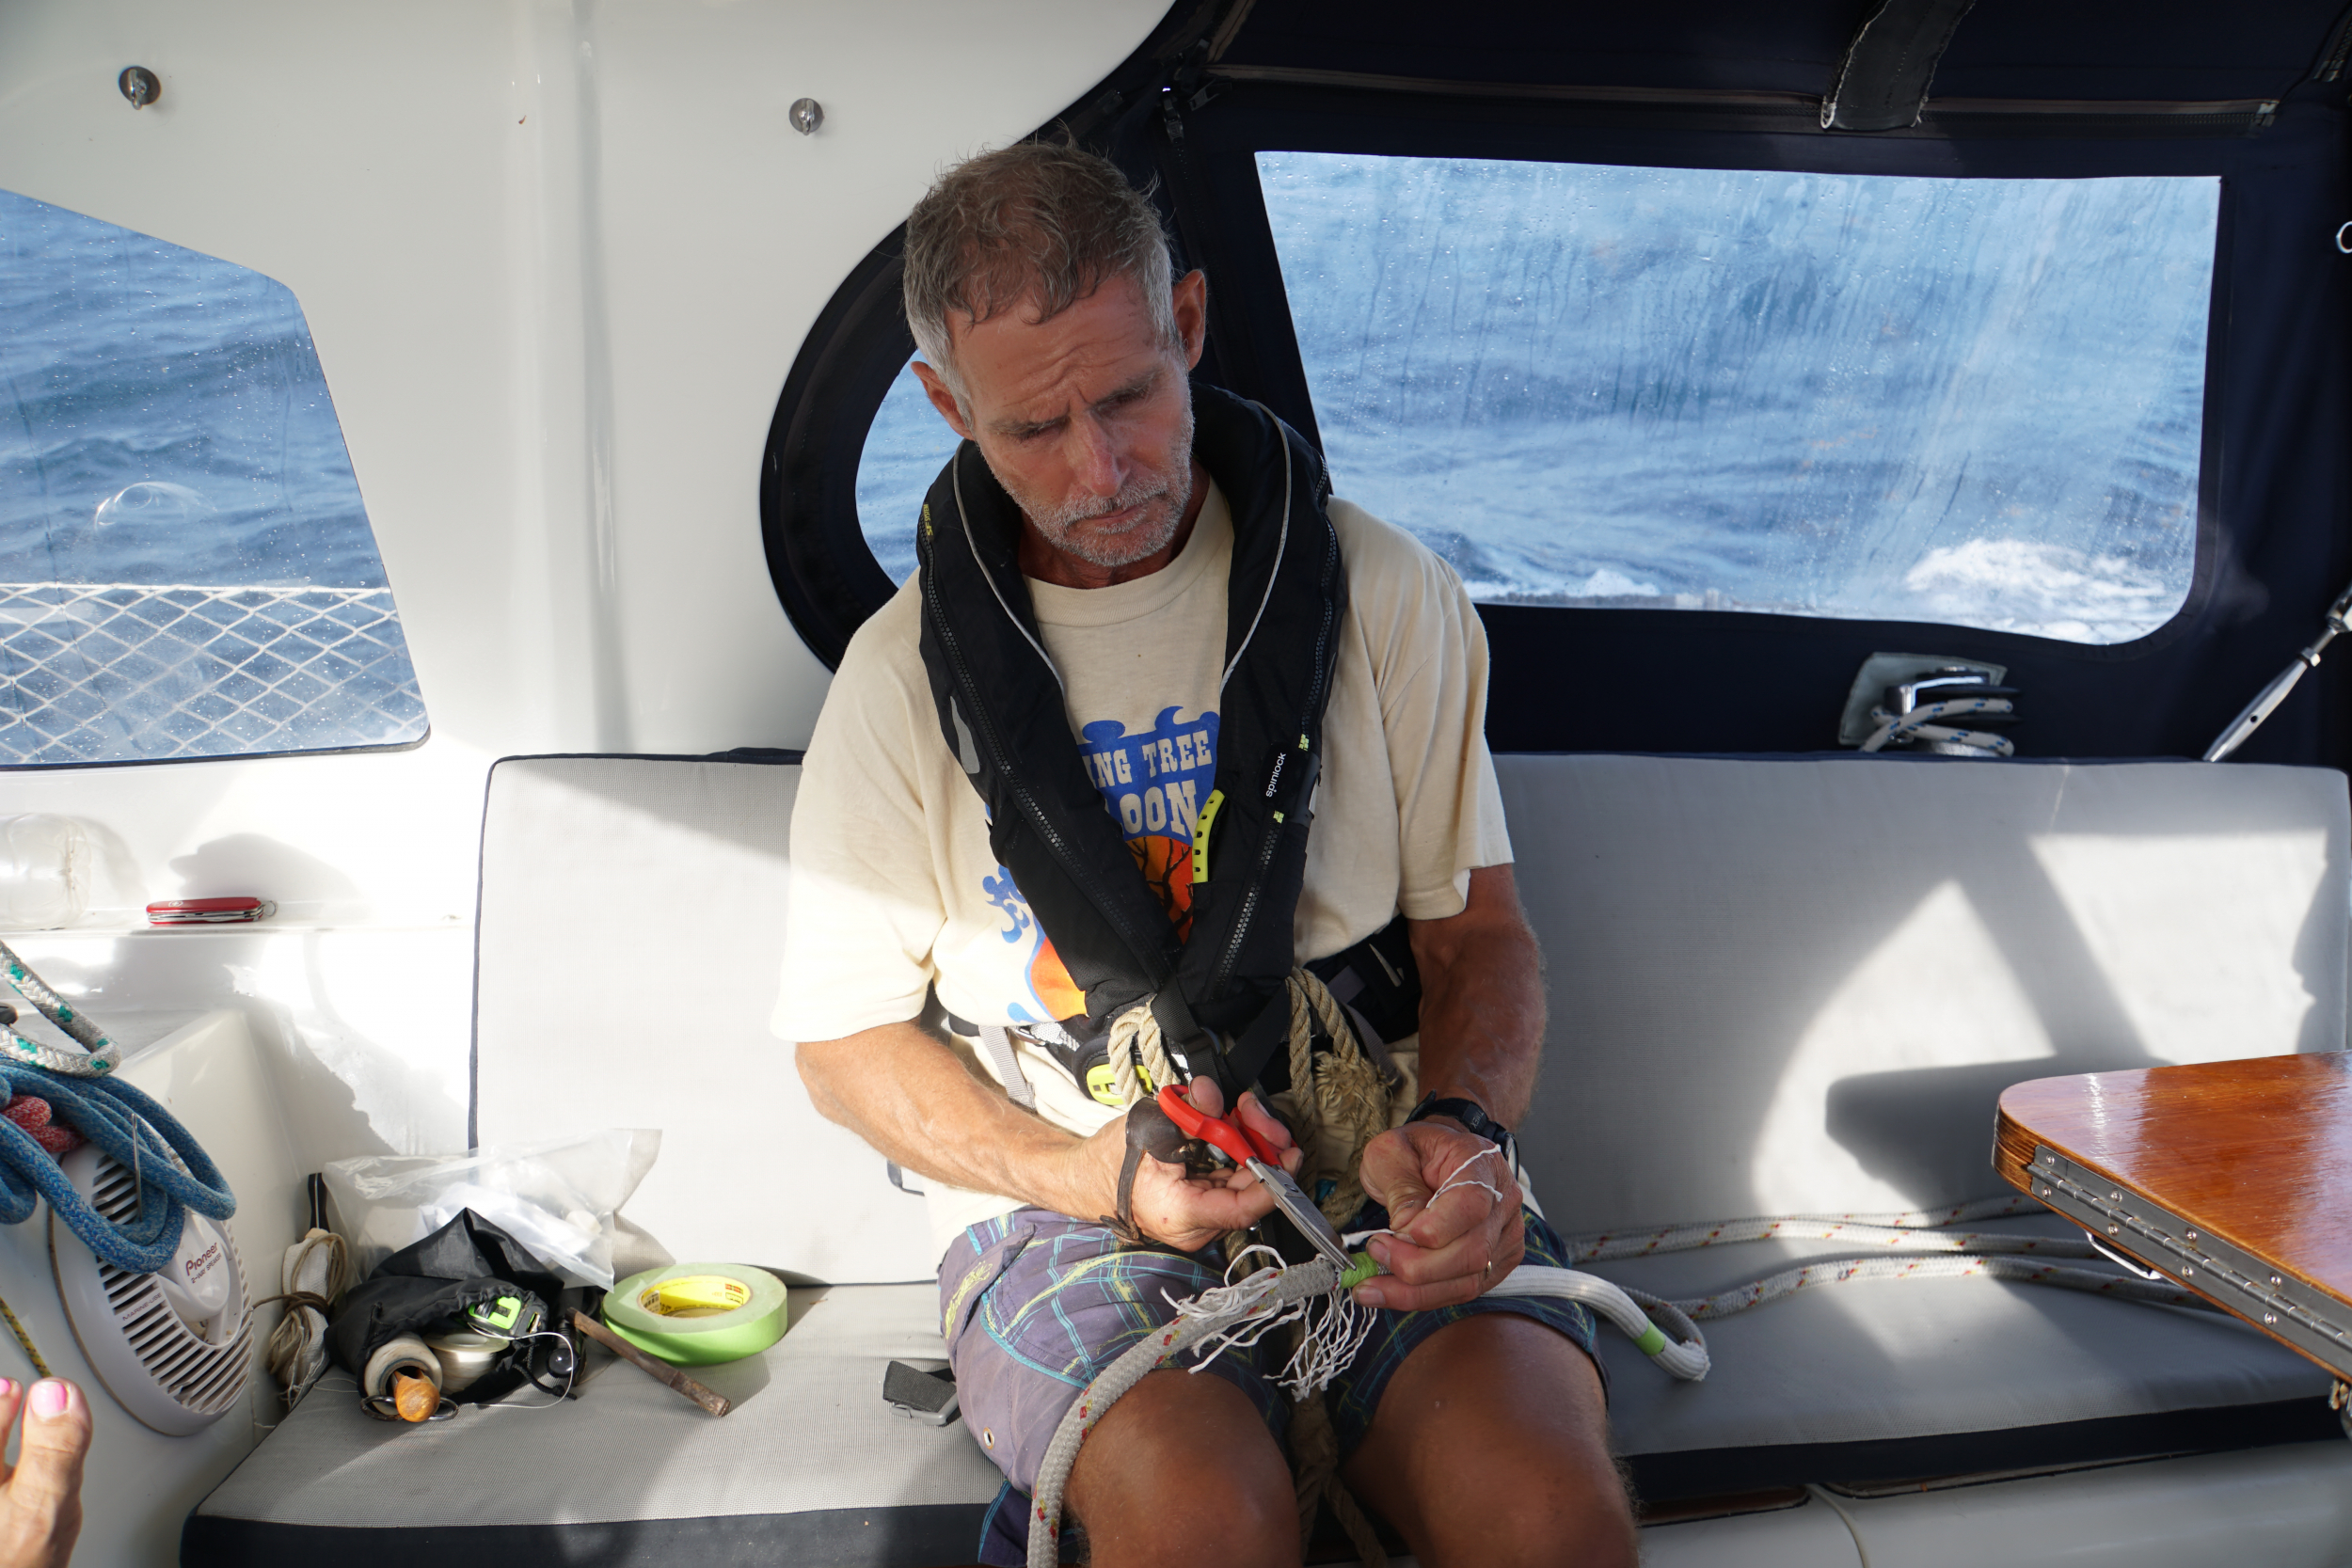 7. Fixing halyards at sea